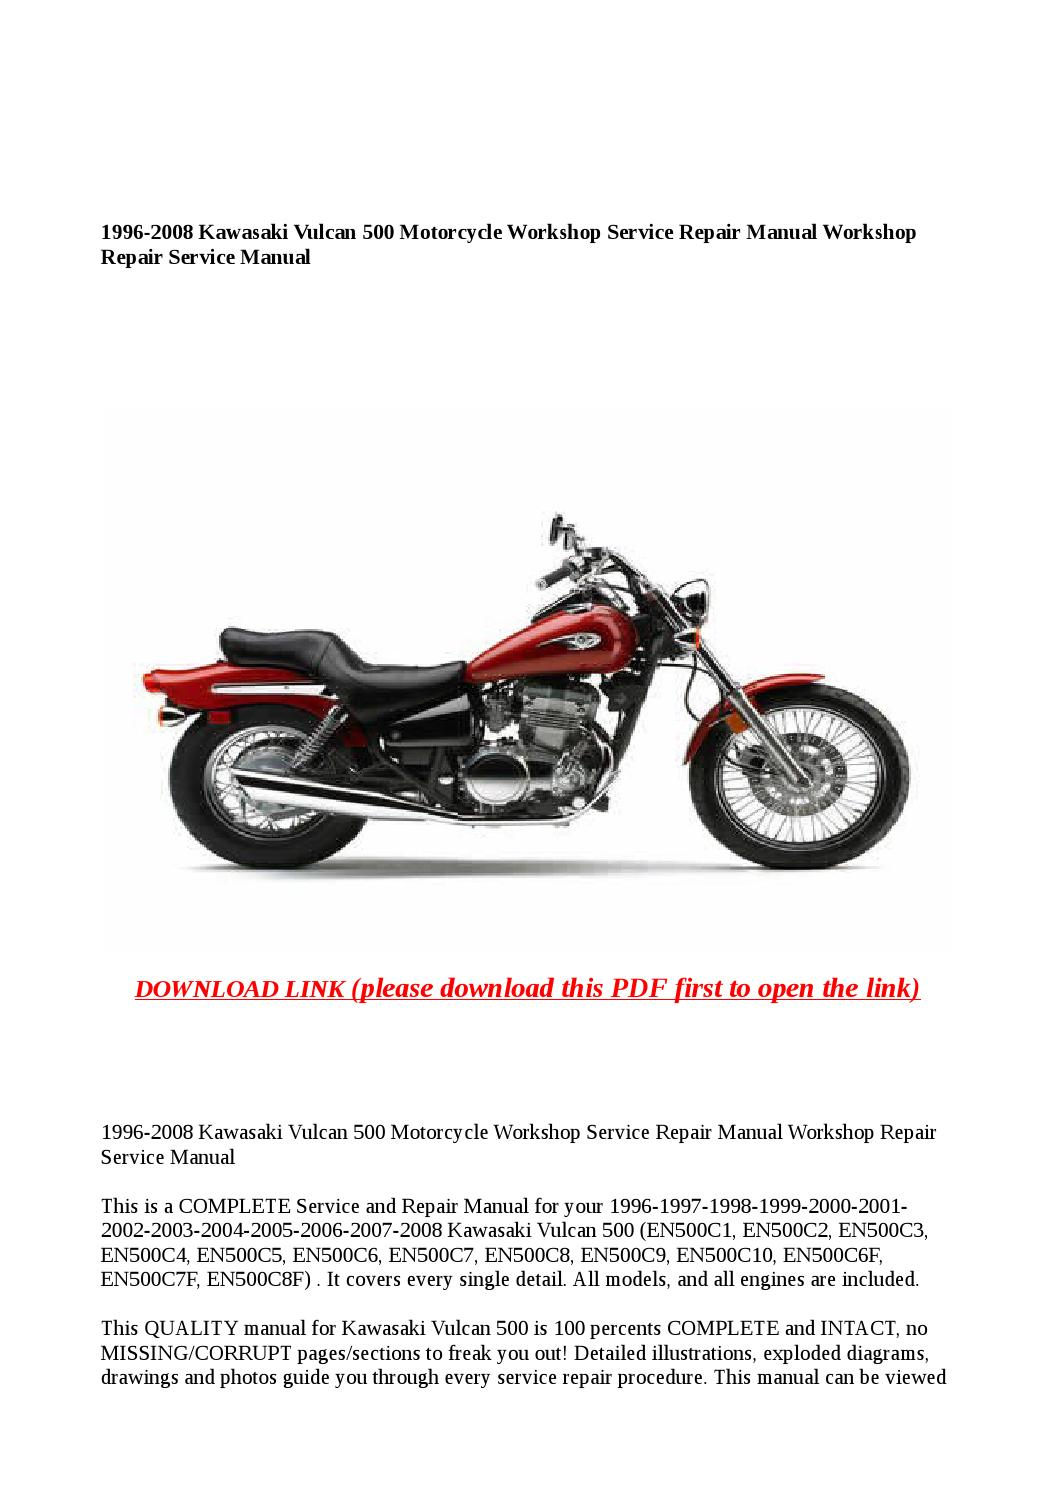 1996 2008 kawasaki vulcan 500 motorcycle workshop service repair manual  workshop repair service manu by Anna Tang - issuu